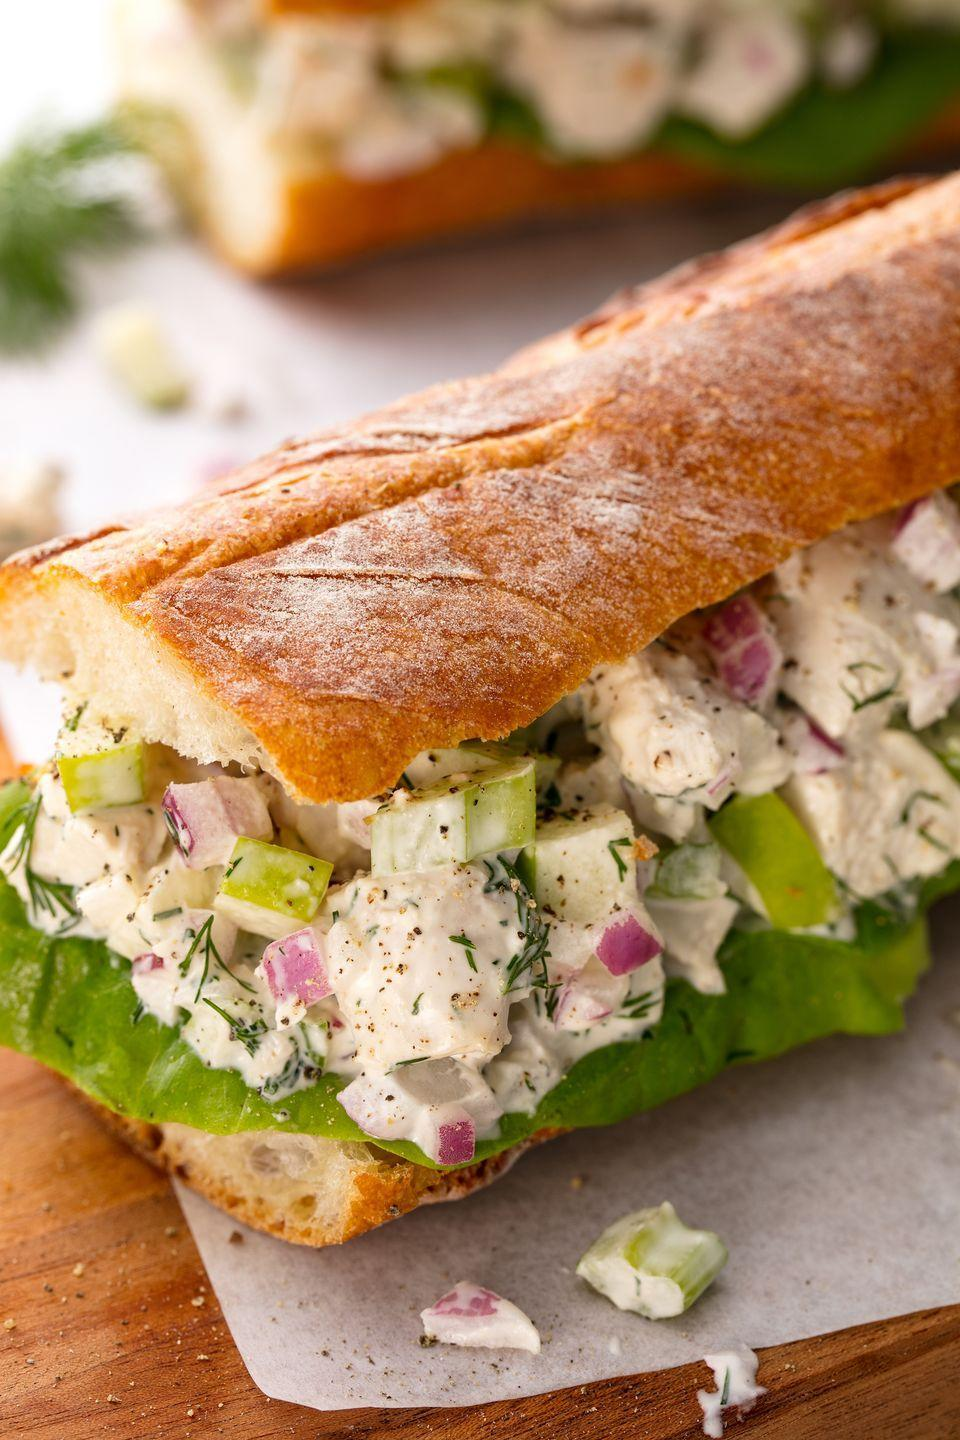 """<p>Just like Mama used to make.</p><p>Get the recipe from <a href=""""https://www.delish.com/cooking/recipe-ideas/recipes/a54787/best-chicken-salad-sandwich-recipe/"""" rel=""""nofollow noopener"""" target=""""_blank"""" data-ylk=""""slk:Delish."""" class=""""link rapid-noclick-resp"""">Delish.</a></p>"""